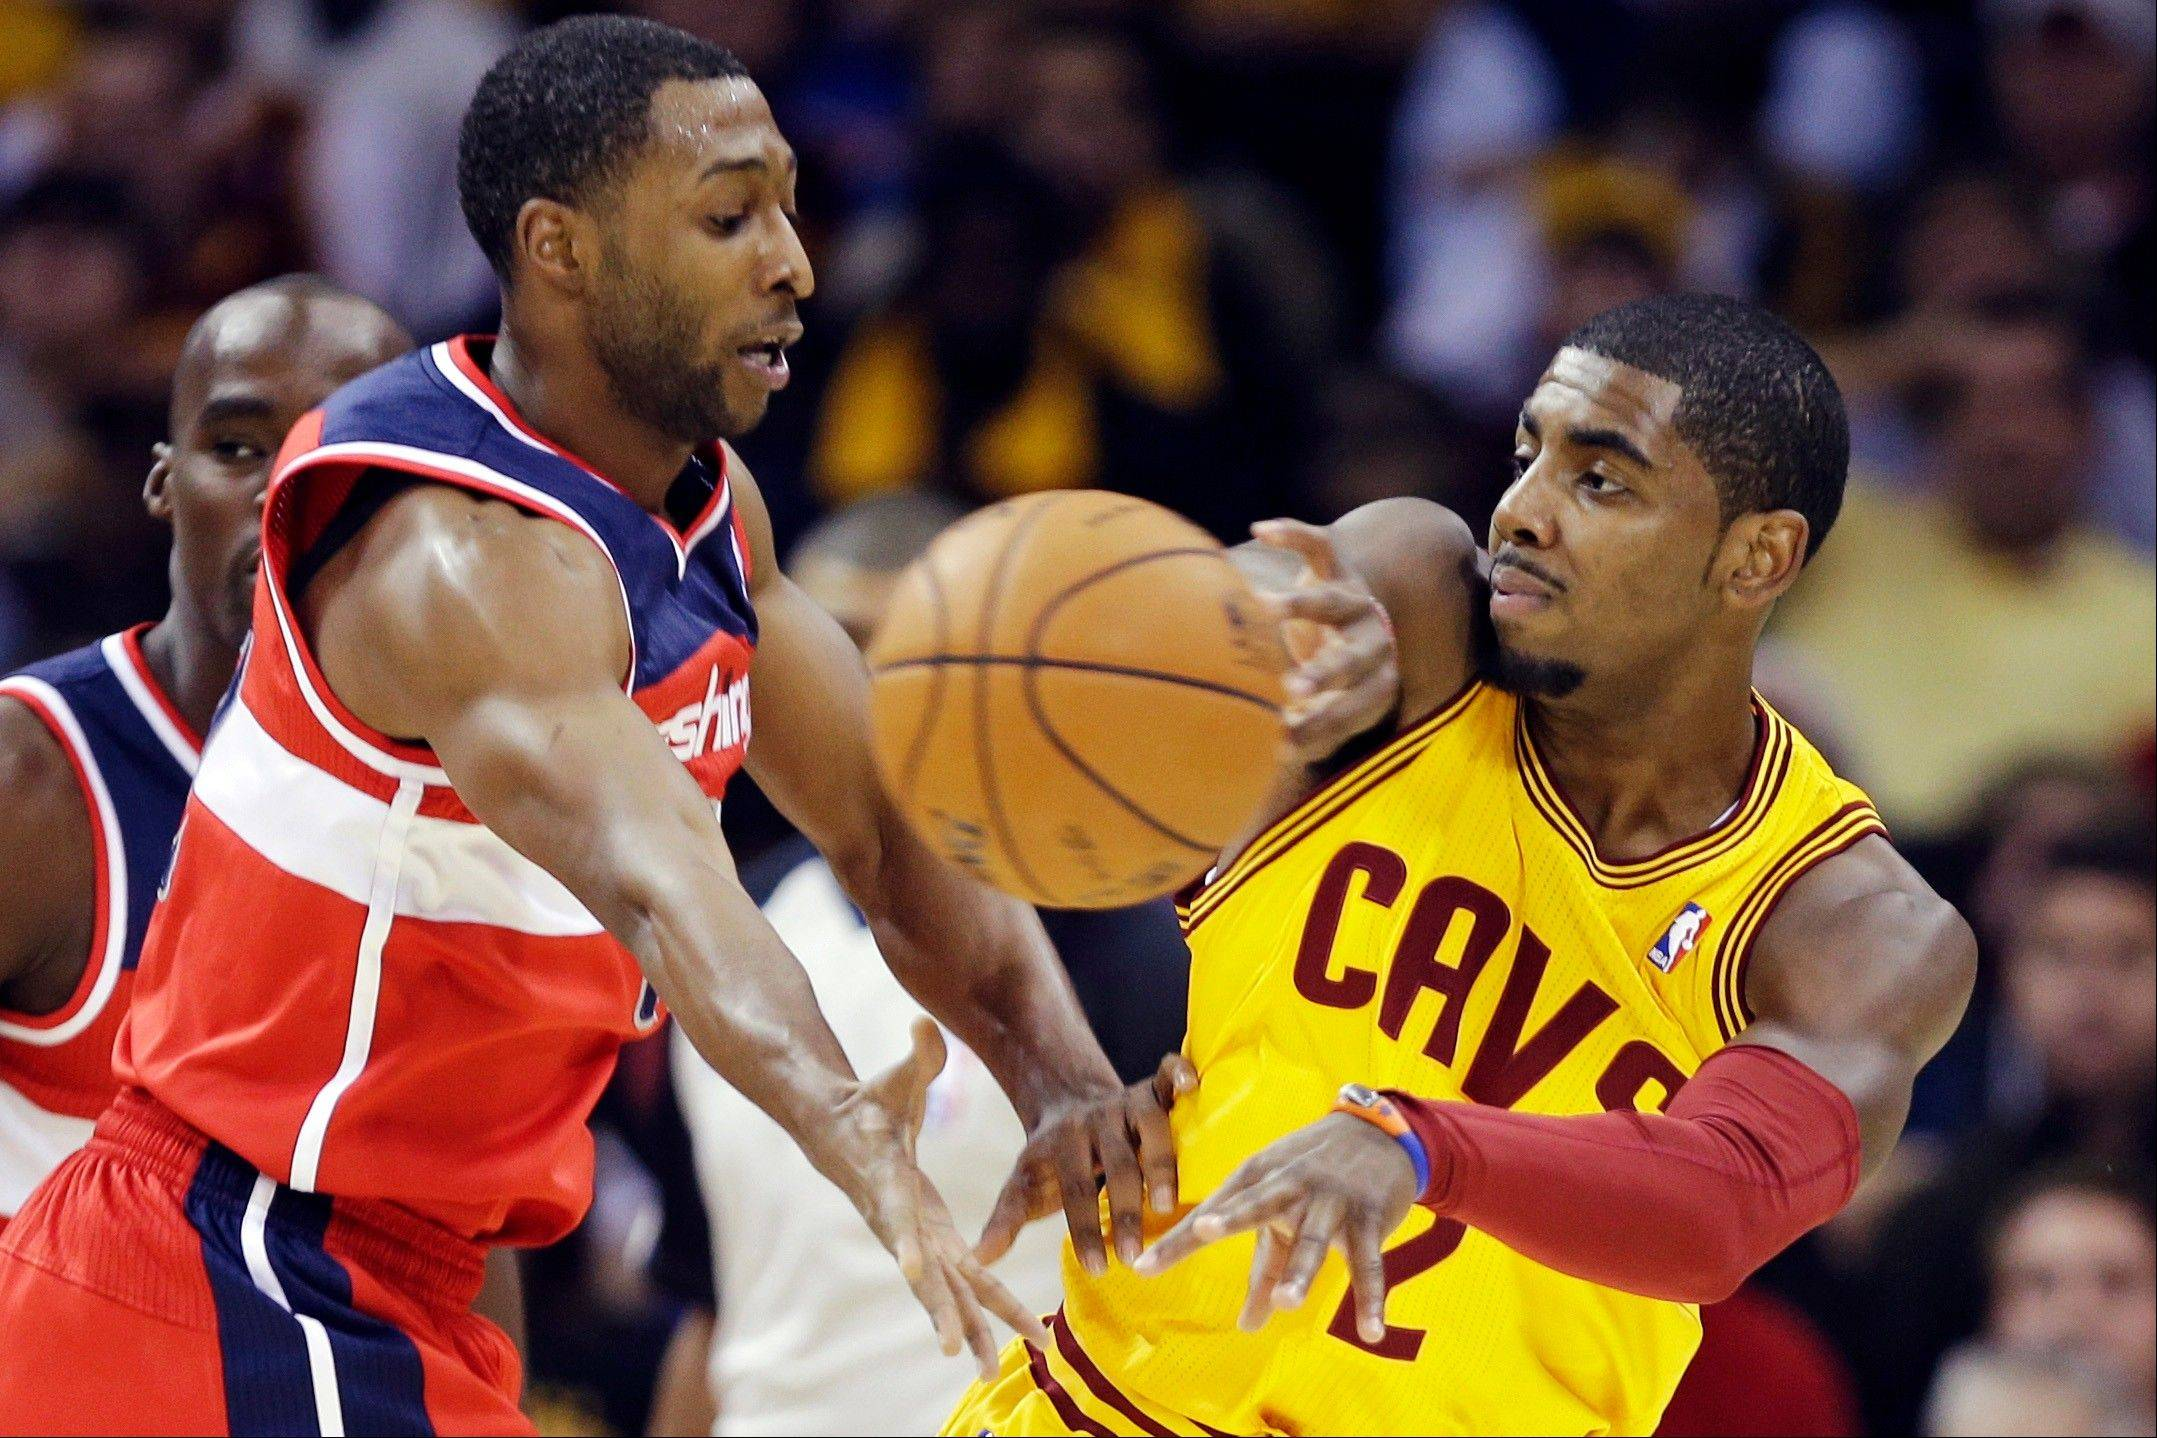 Cleveland Cavaliers guard Kyrie Irving passes away from Washington Wizards' A.J. Price Tuesday during the first quarter in Cleveland.